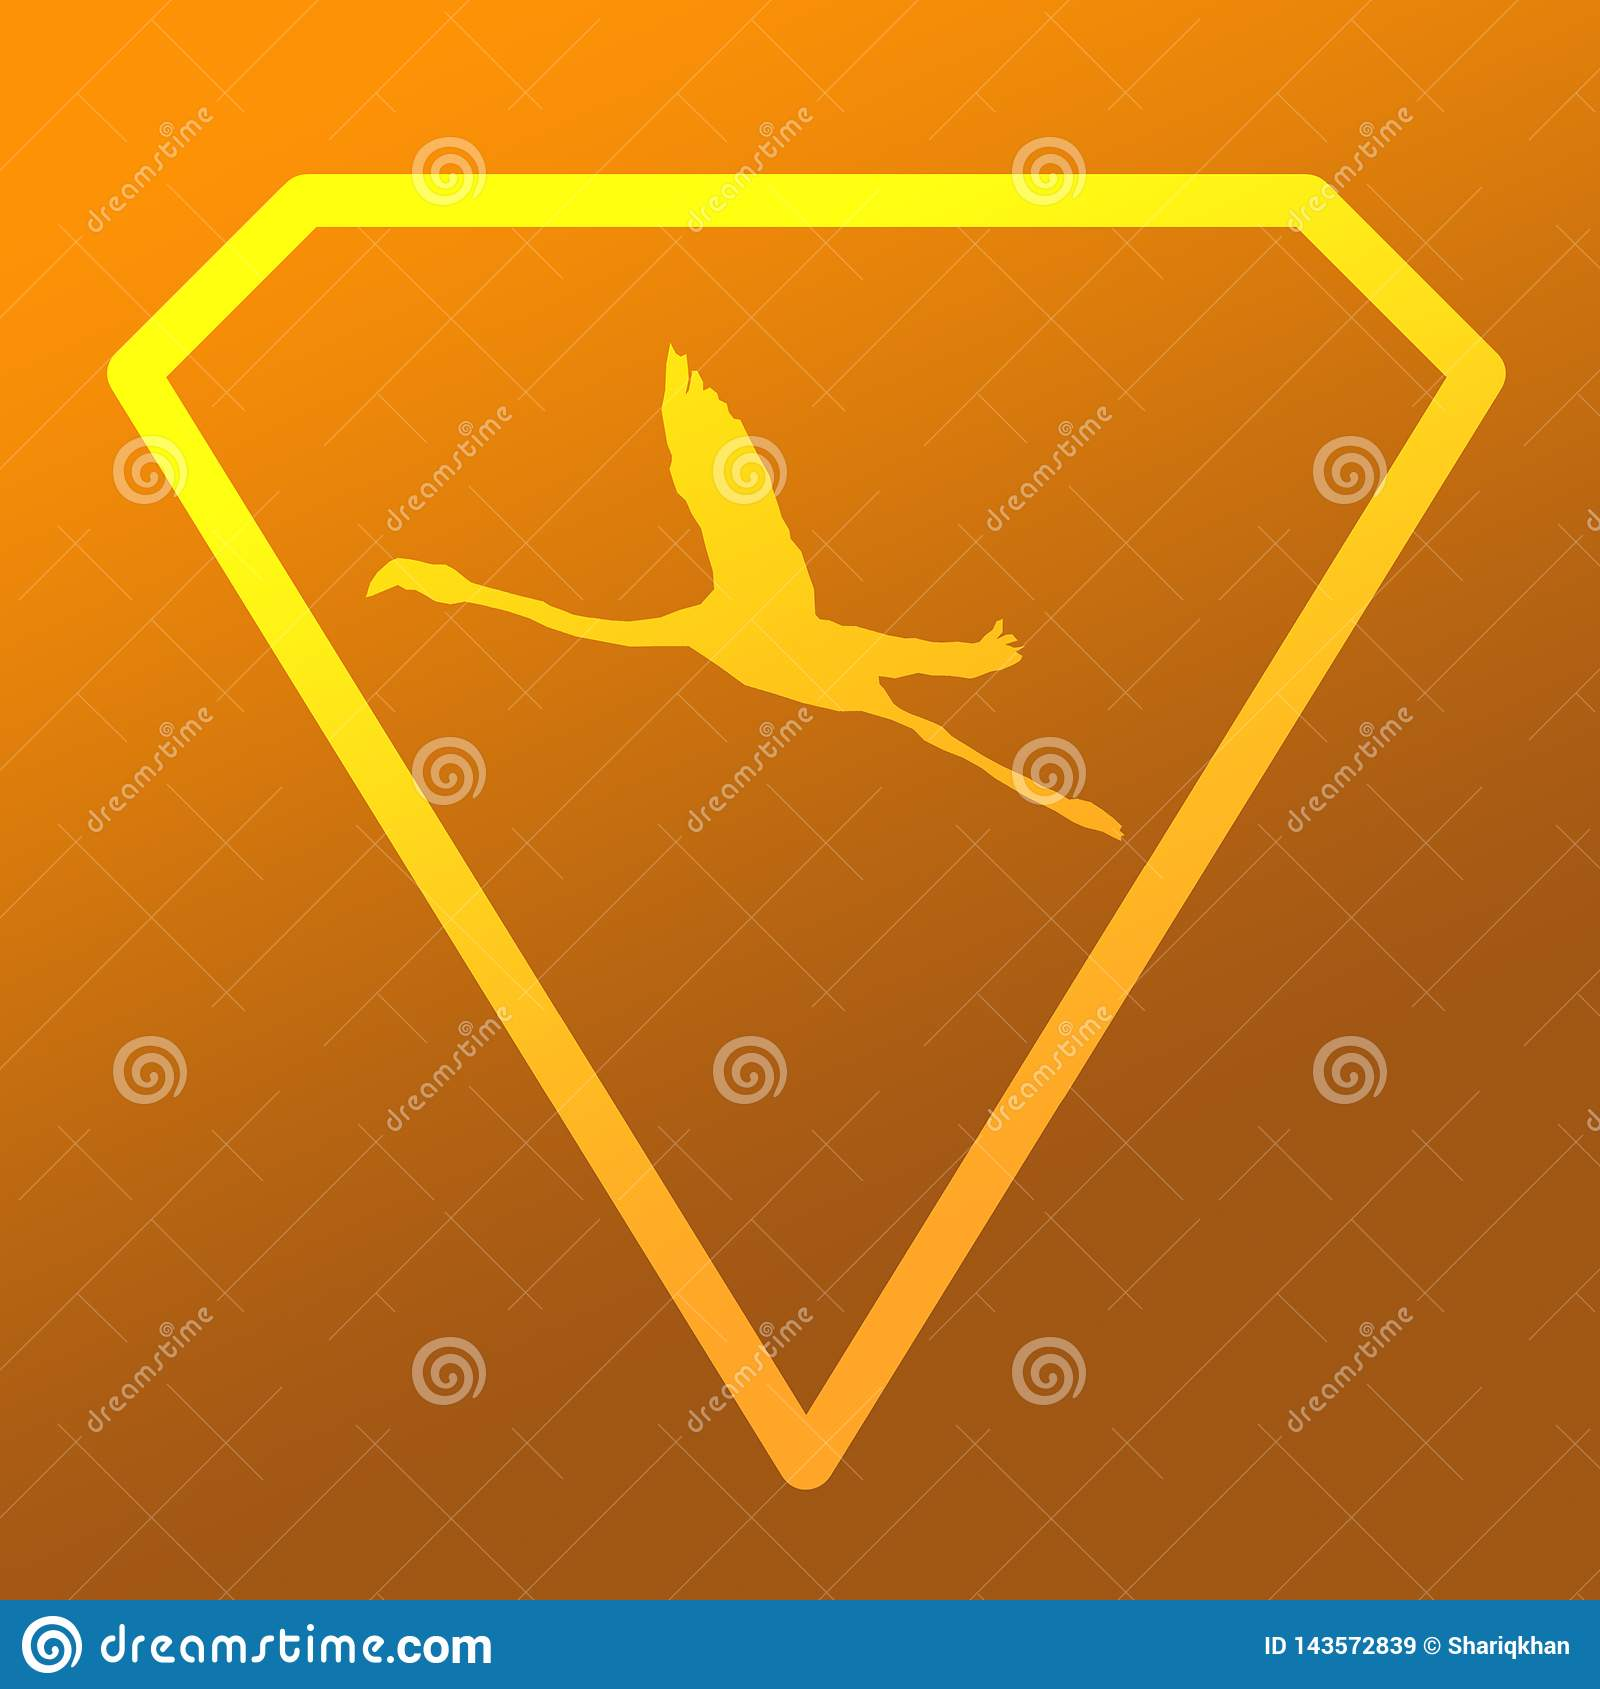 Flamenco de Logo Banner Image Flying Bird en Diamond Shape en fondo anaranjado de color caqui